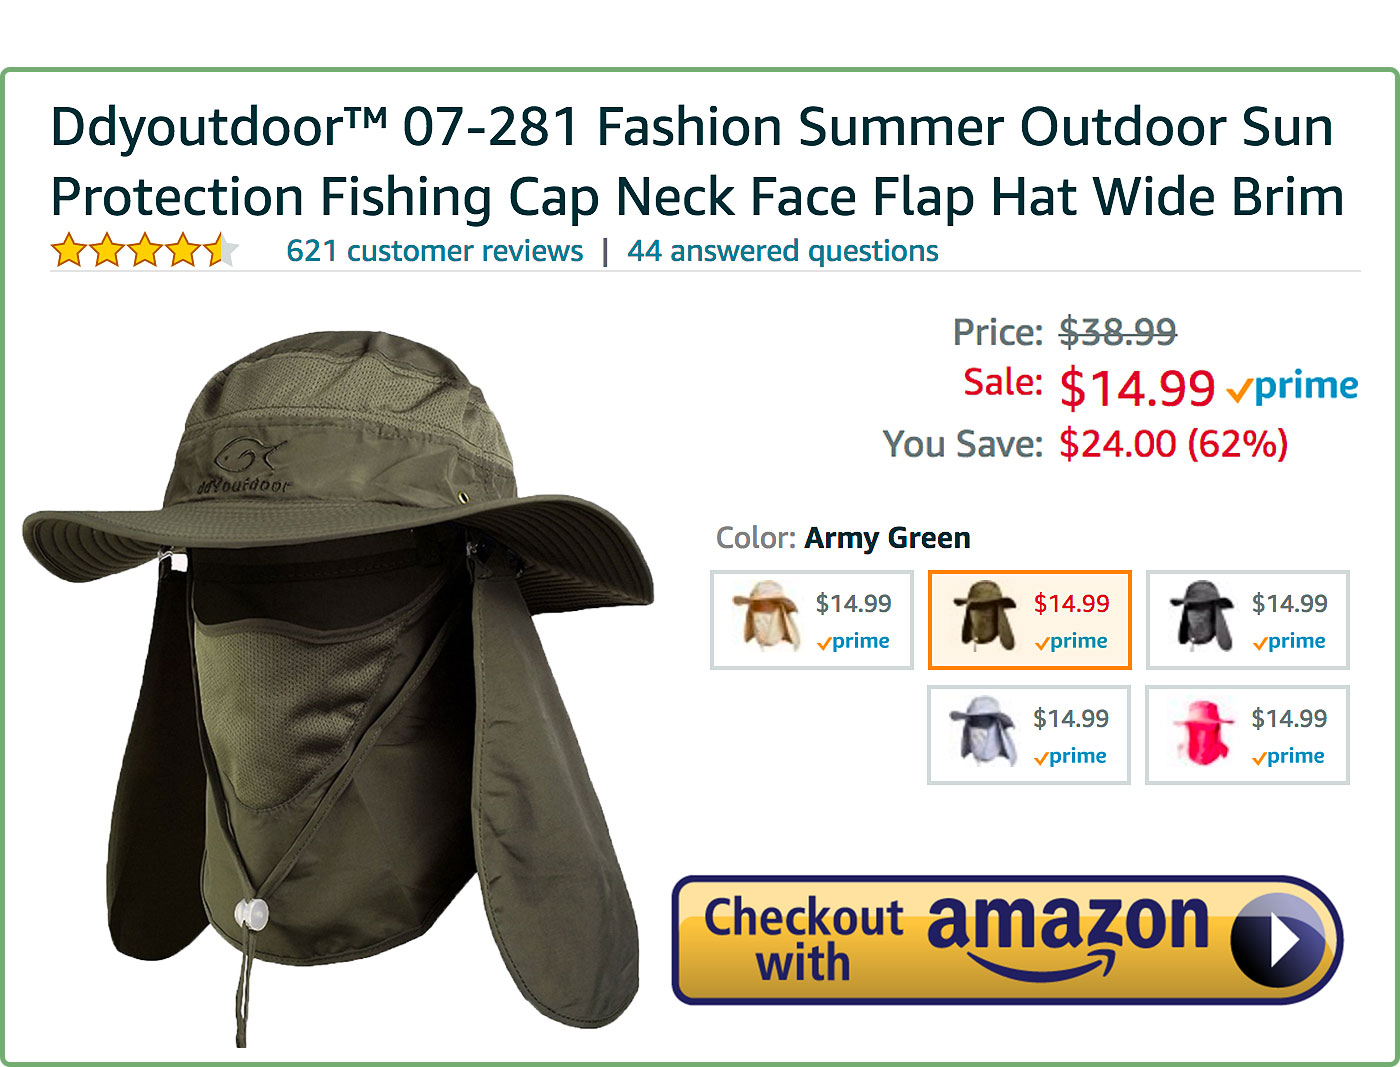 BugOutBagBuilder-Ddyoutdoor-Neck-&-Face-Flap-Wide-Brim-Hat-AMZ.jpg